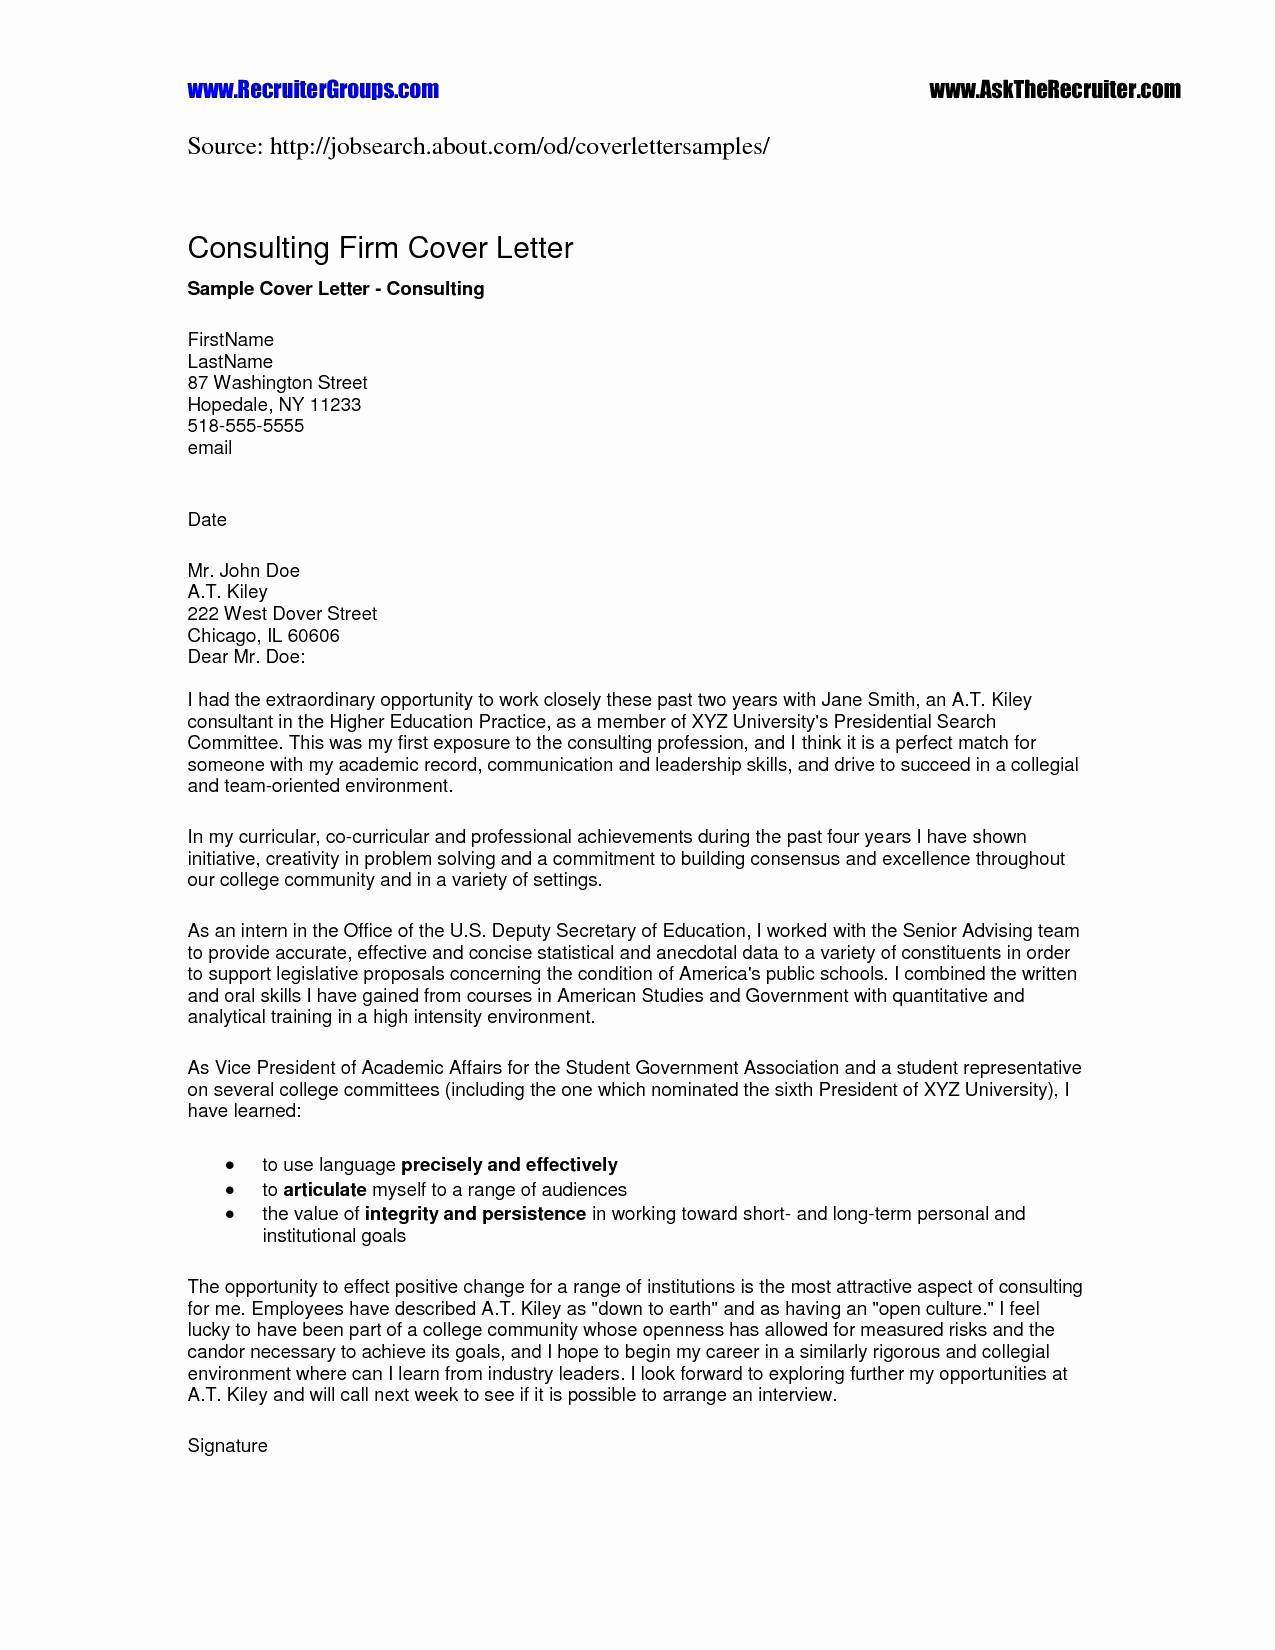 Cease and Desist Letter Template for Debt Collectors - Cease and Desist Letter Template for Debt Collectors Fresh 20 Debt